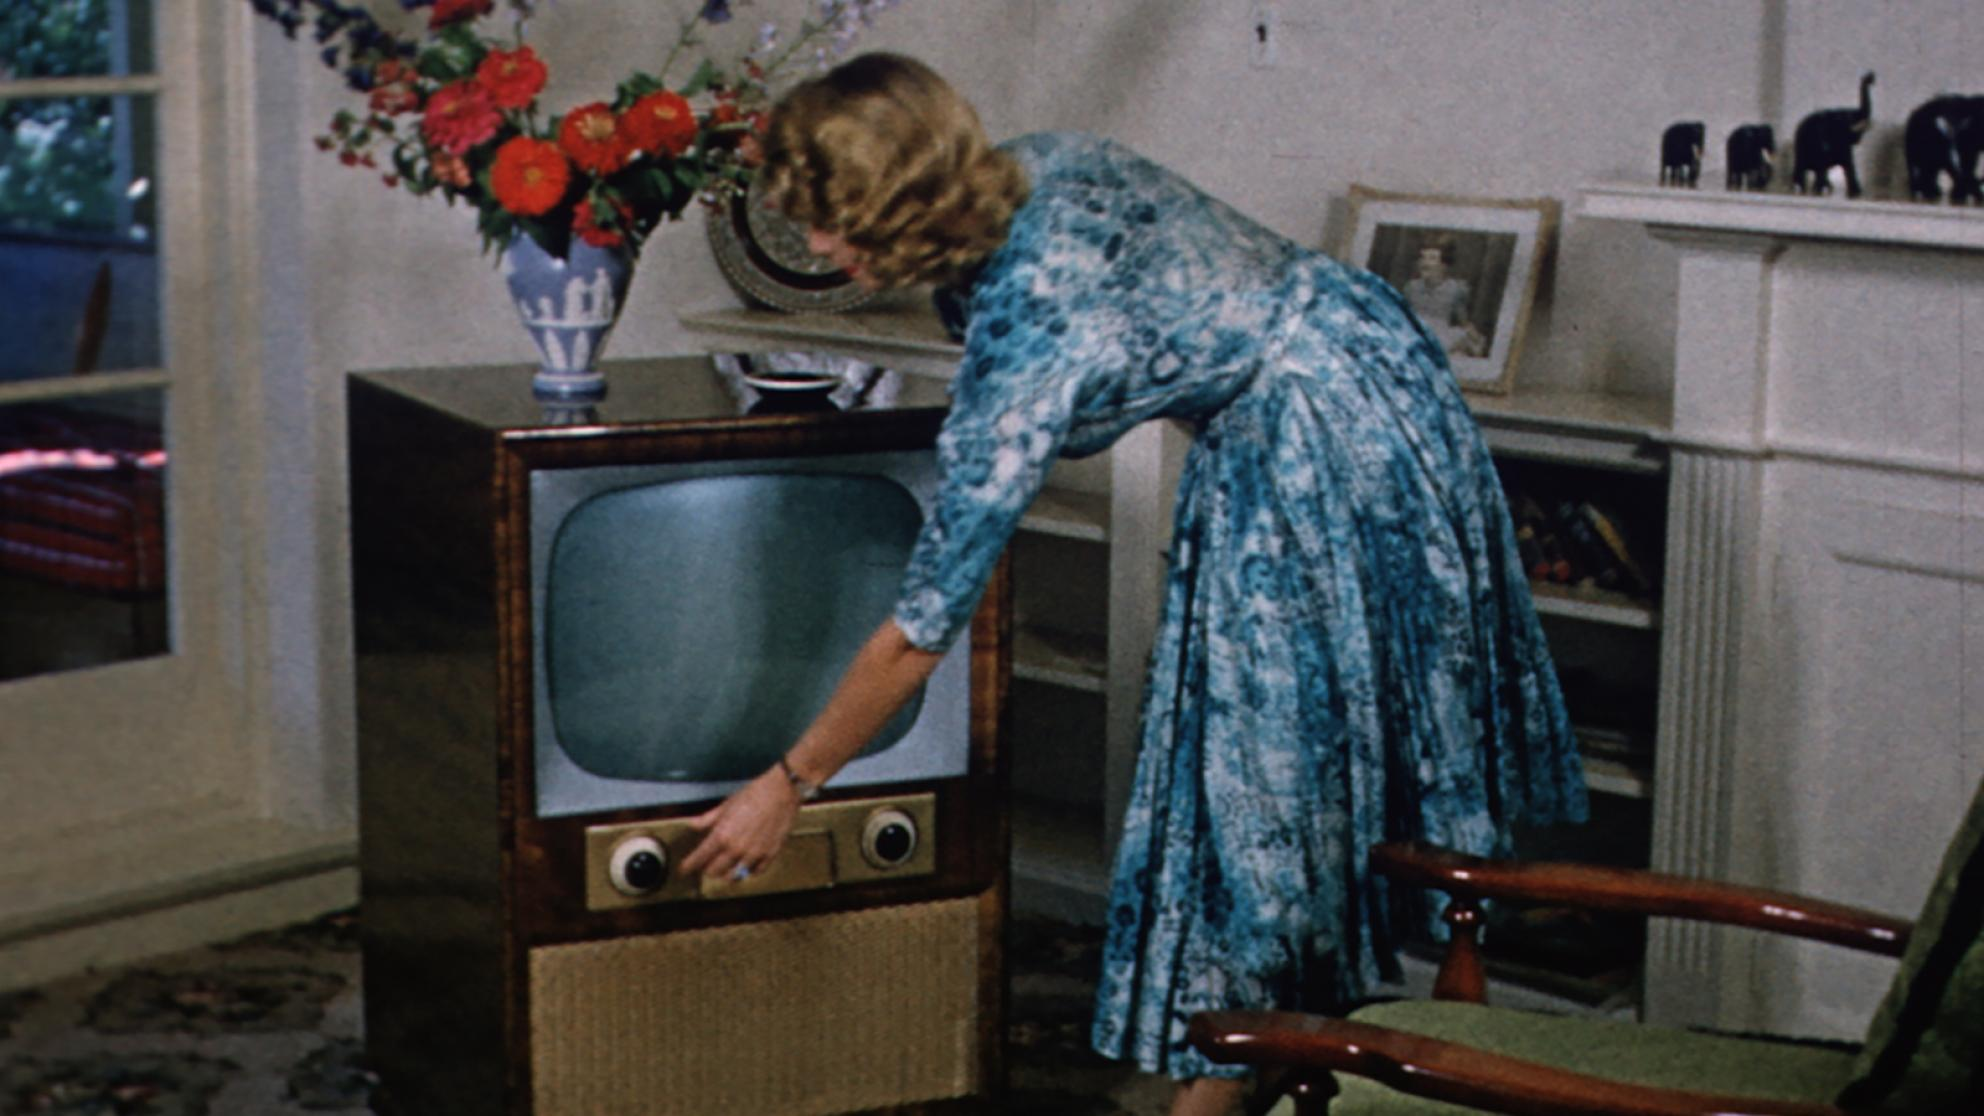 1950s image of a woman turning on a television set in her living room.